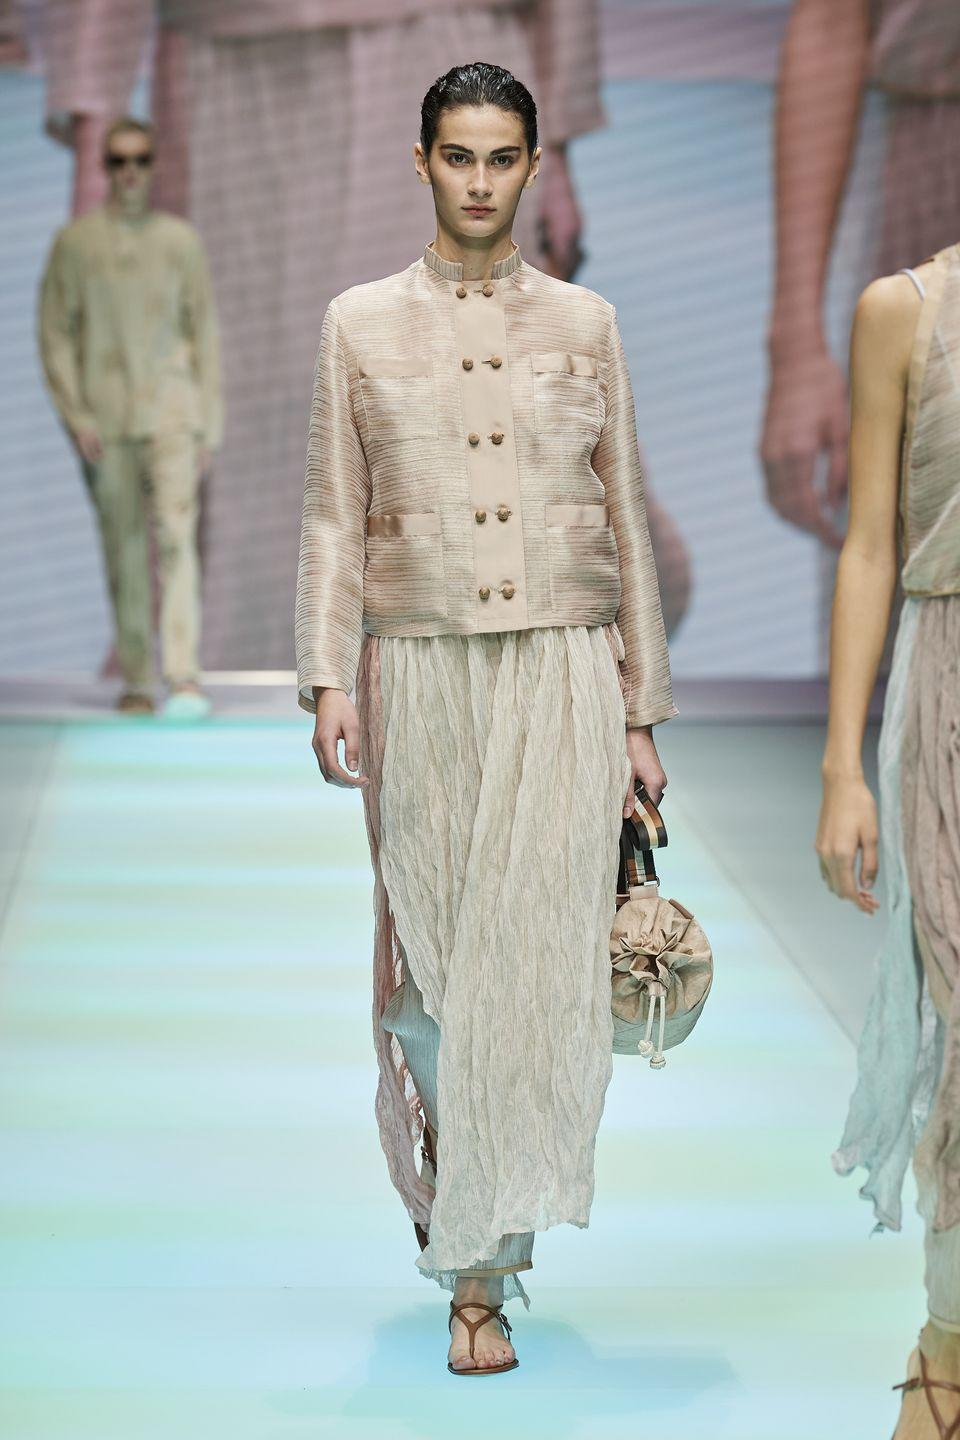 """<p>Celebrating its 40-year anniversary, Emporio Armani showed the men's and women's collections together for SS22, one which was entitled 'Elsewhere'.</p><p>""""Under the symbol of an eagle that flies high and knows no<br>boundaries, for forty years, Emporio Armani has been<br>expressing the joys of fashion free from imposed rules, that nevertheless maintains the harmony of shapes, balance, and the sense of nonchalant elegance that are the essence of Armani style,"""" the show notes read. """"This season, the journey begins in an imaginary desert, crossing its oasis and ending in vibrant colourways. Everything blends together, quite freely.""""</p>"""